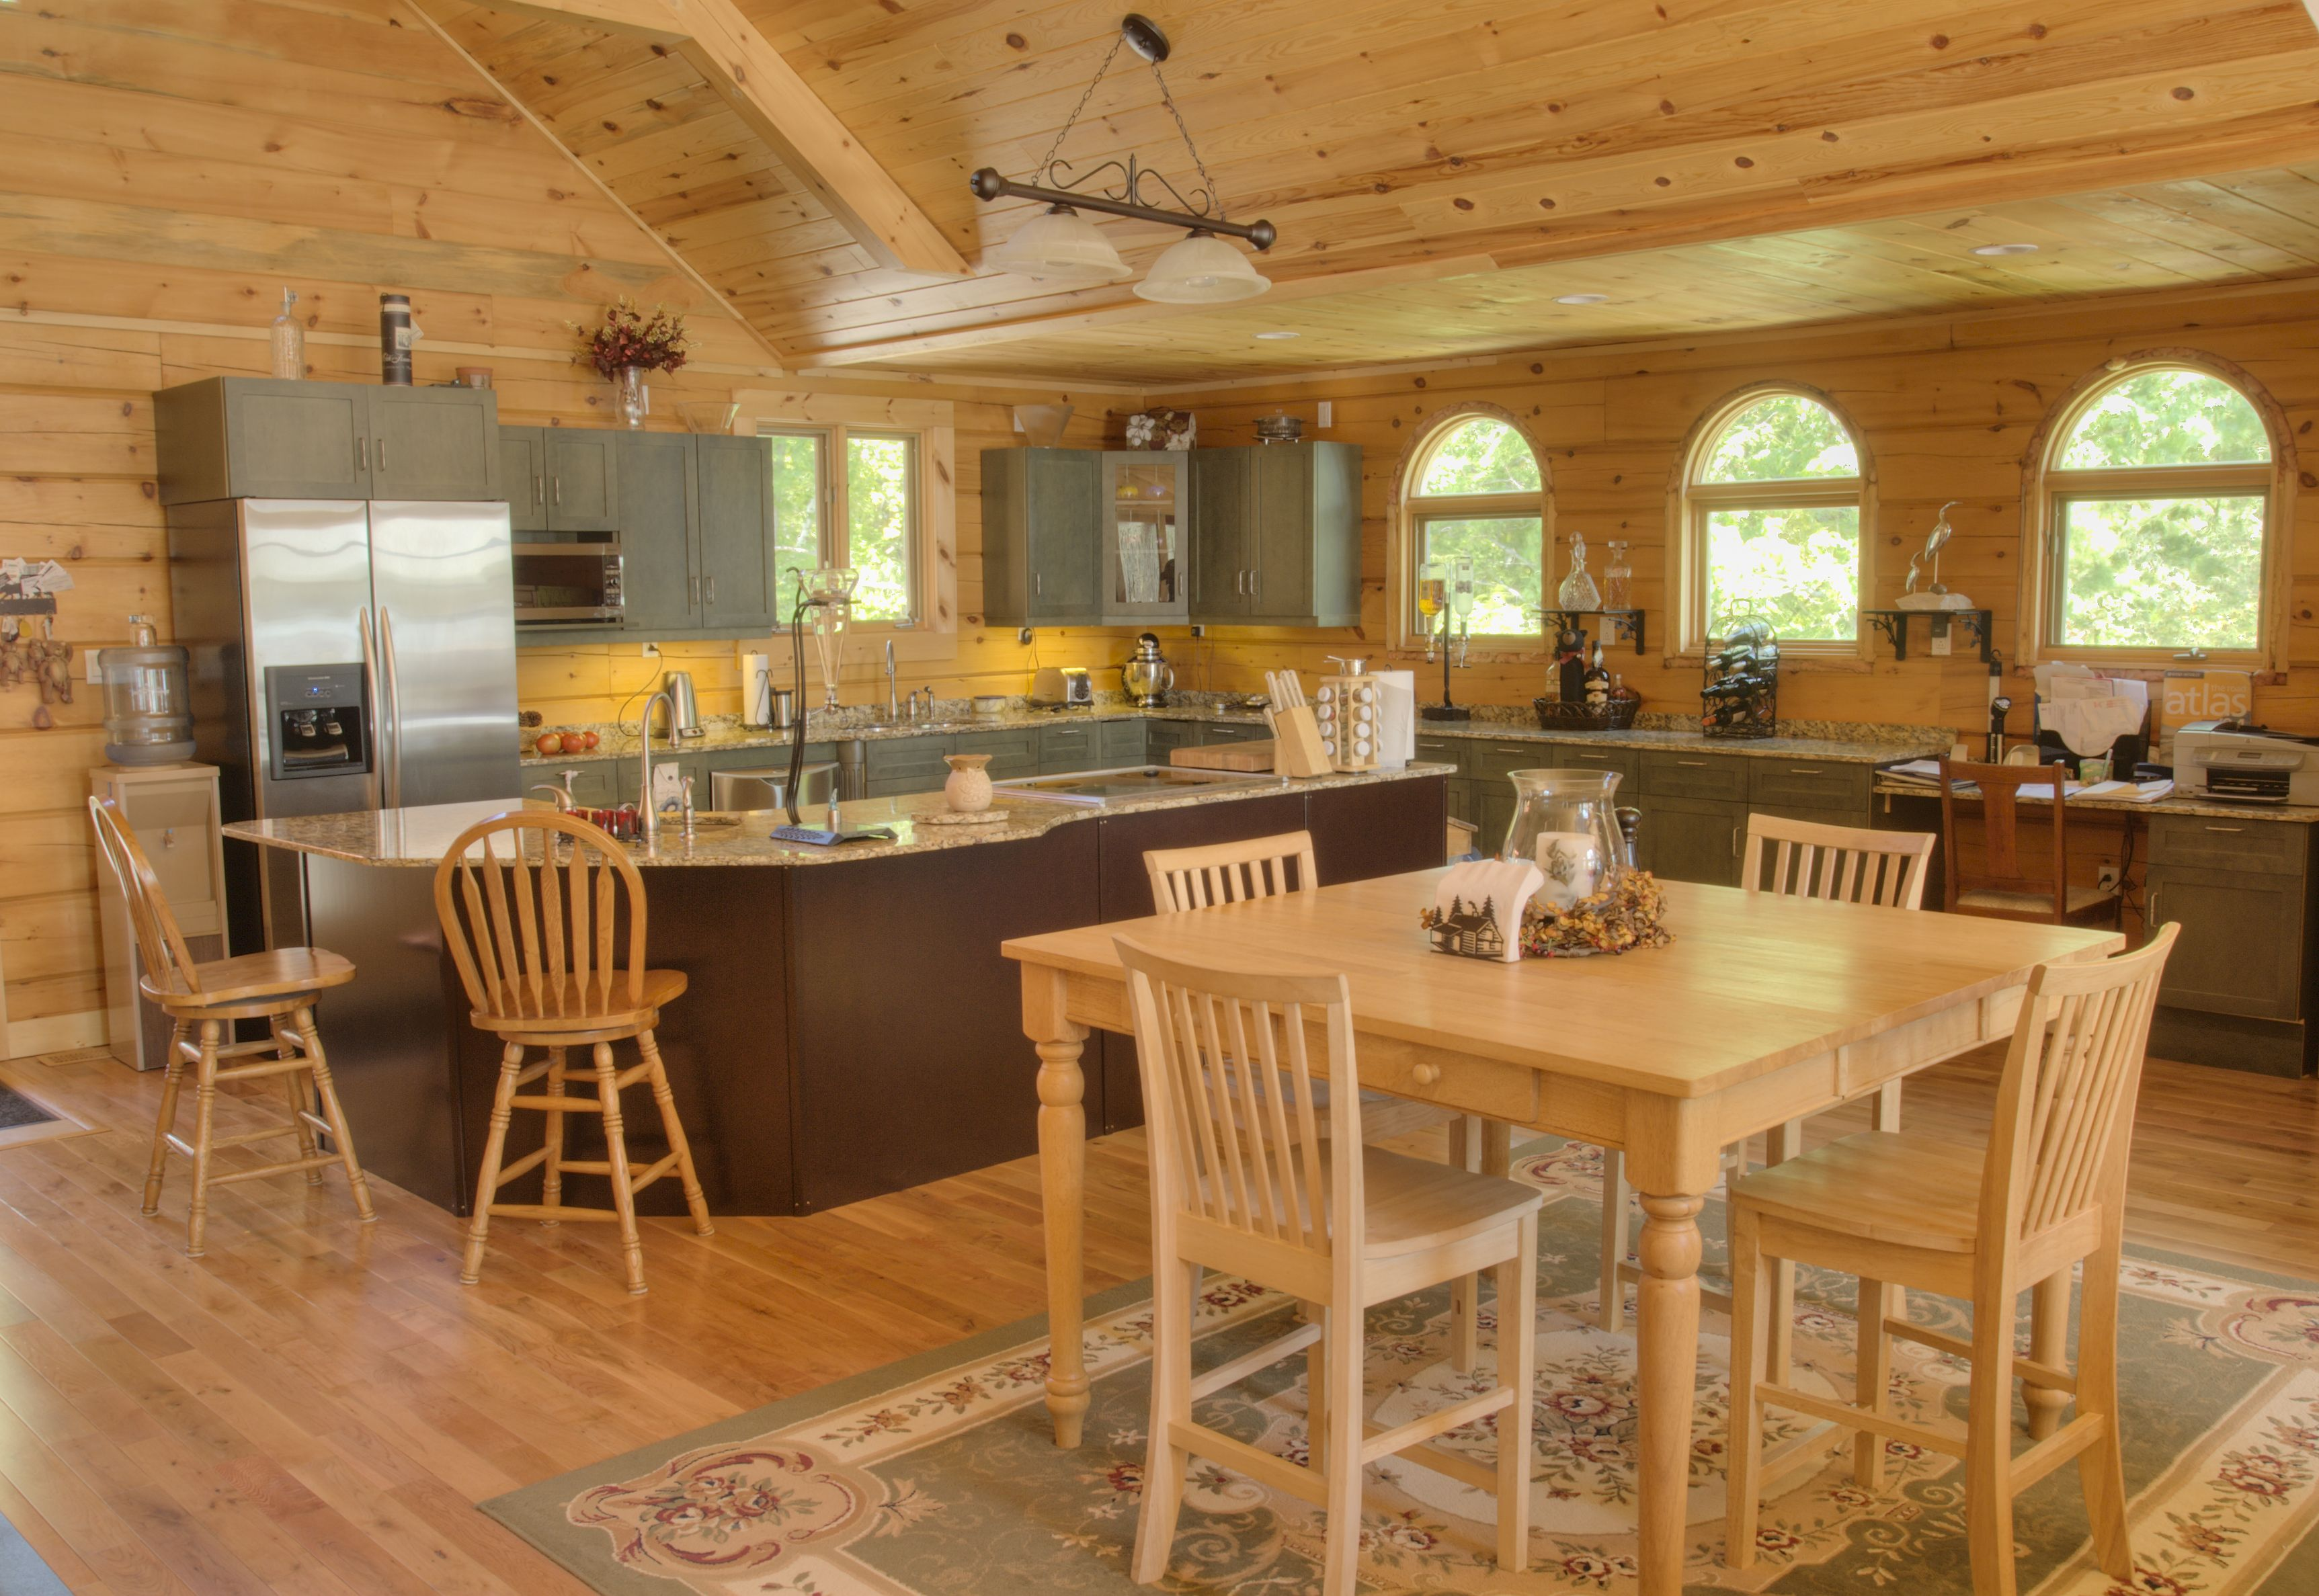 Beautiful Discovery Dream Homes Timber Frame Kitchen in our Pine Villa Home  #Kitchen #PineVilla #Log #TimberFrame #Custom #DiscoveryDreamHomes